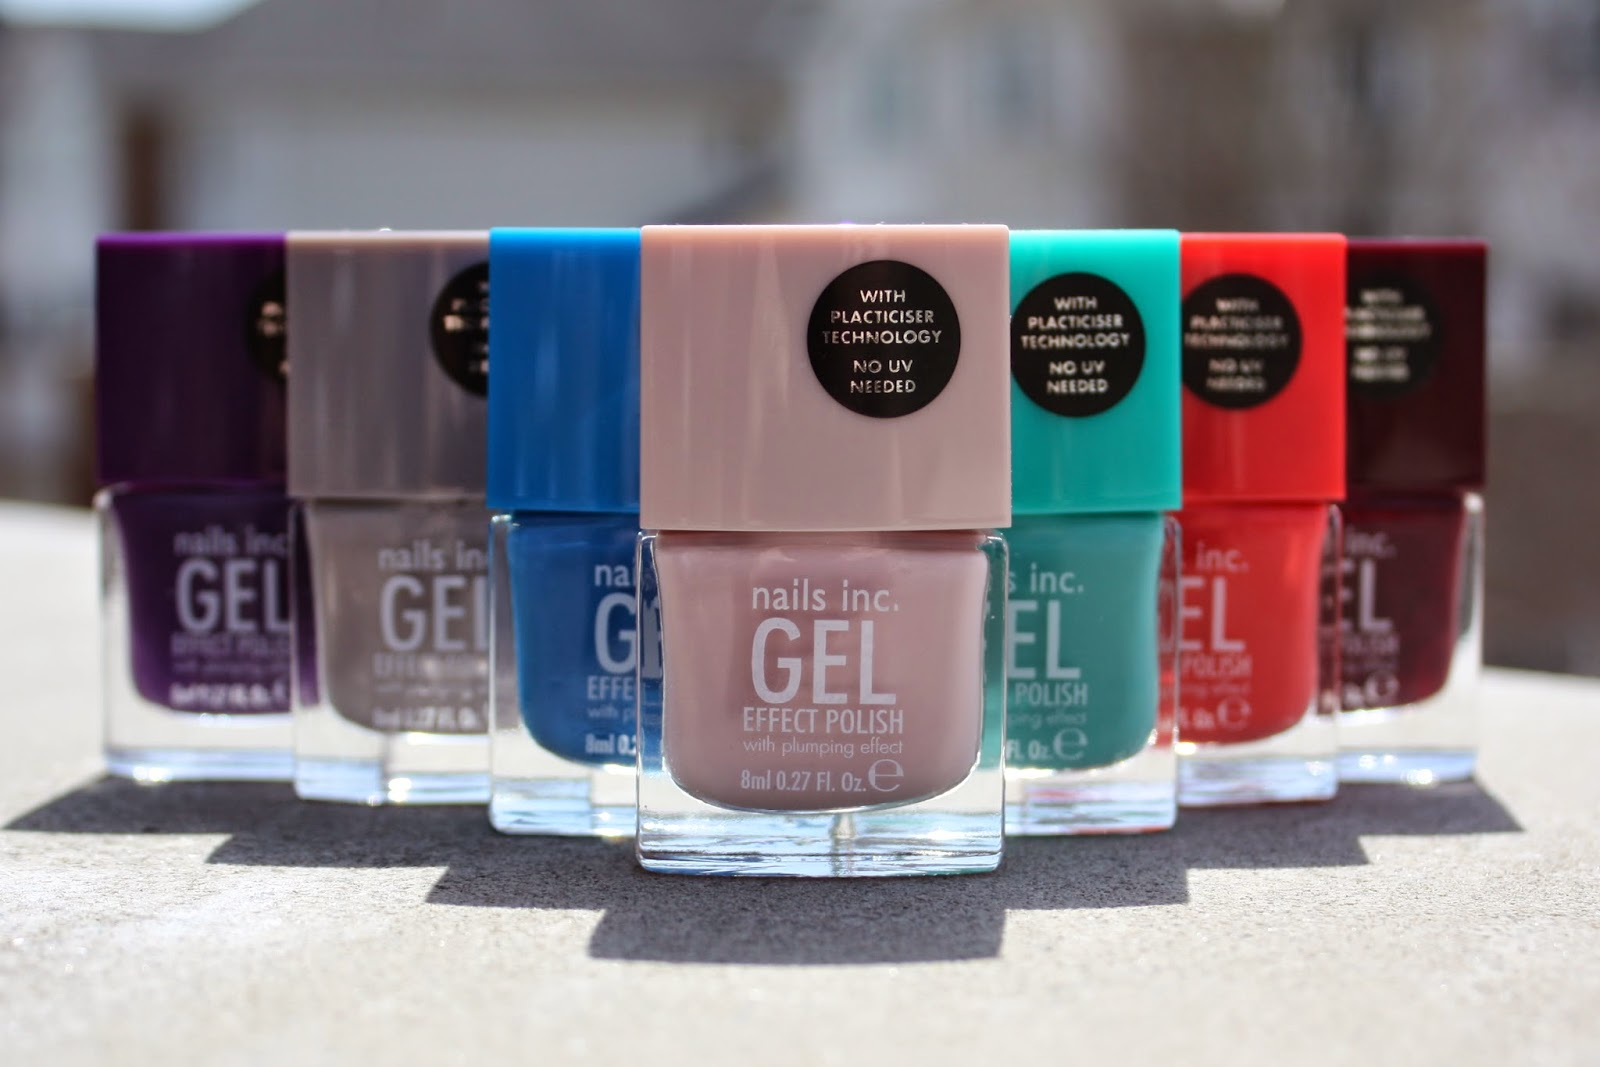 Nails Inc. Gel Effect Polish in Soho Place, Mayfair Lane, Mercer Street, Porchester Square, Bond Street, Kensington Passage, Kensington High Street Review & Swatches